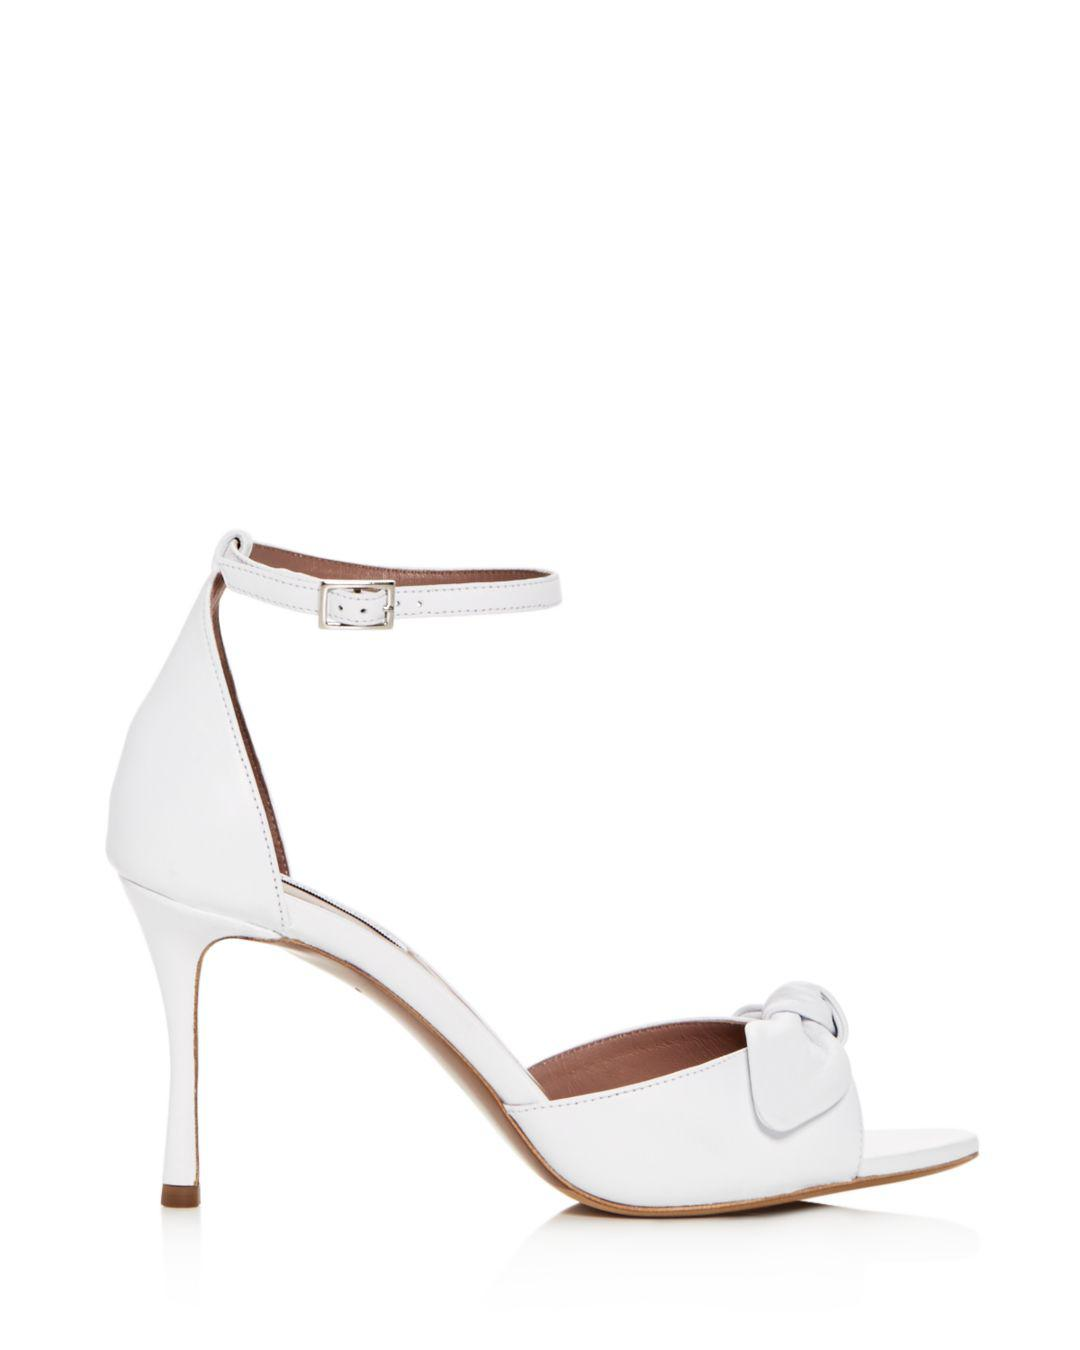 0466629984 Lyst - Tabitha Simmons Women's Mimmi Leather High-heel Sandals in White